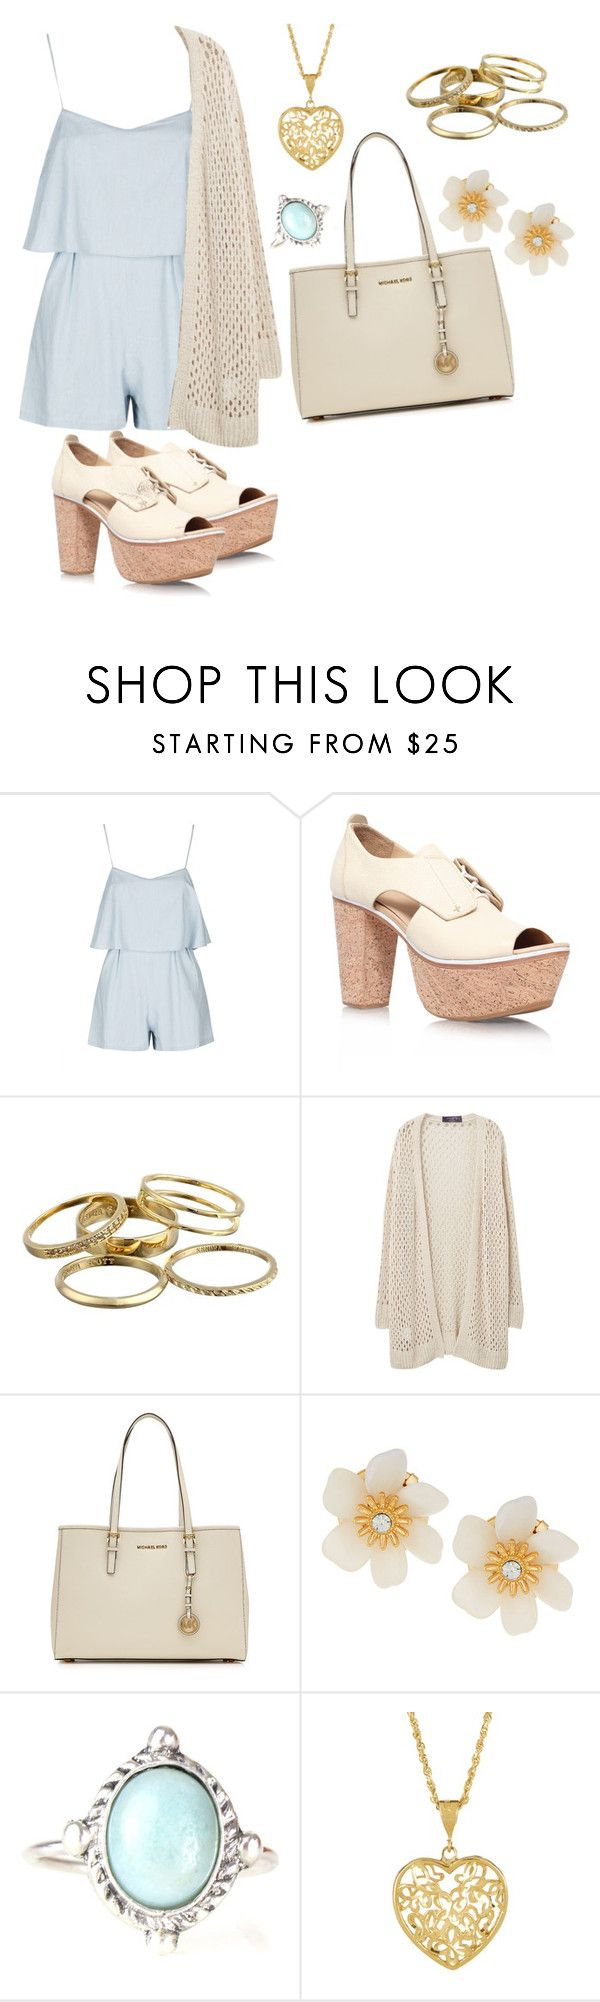 """""""rompers in BABY BLUE"""" by salorah ❤ liked on Polyvore featuring Topshop, rag & bone, Kendra Scott, Violeta by Mango, MICHAEL Michael Kors and Lydell NYC"""